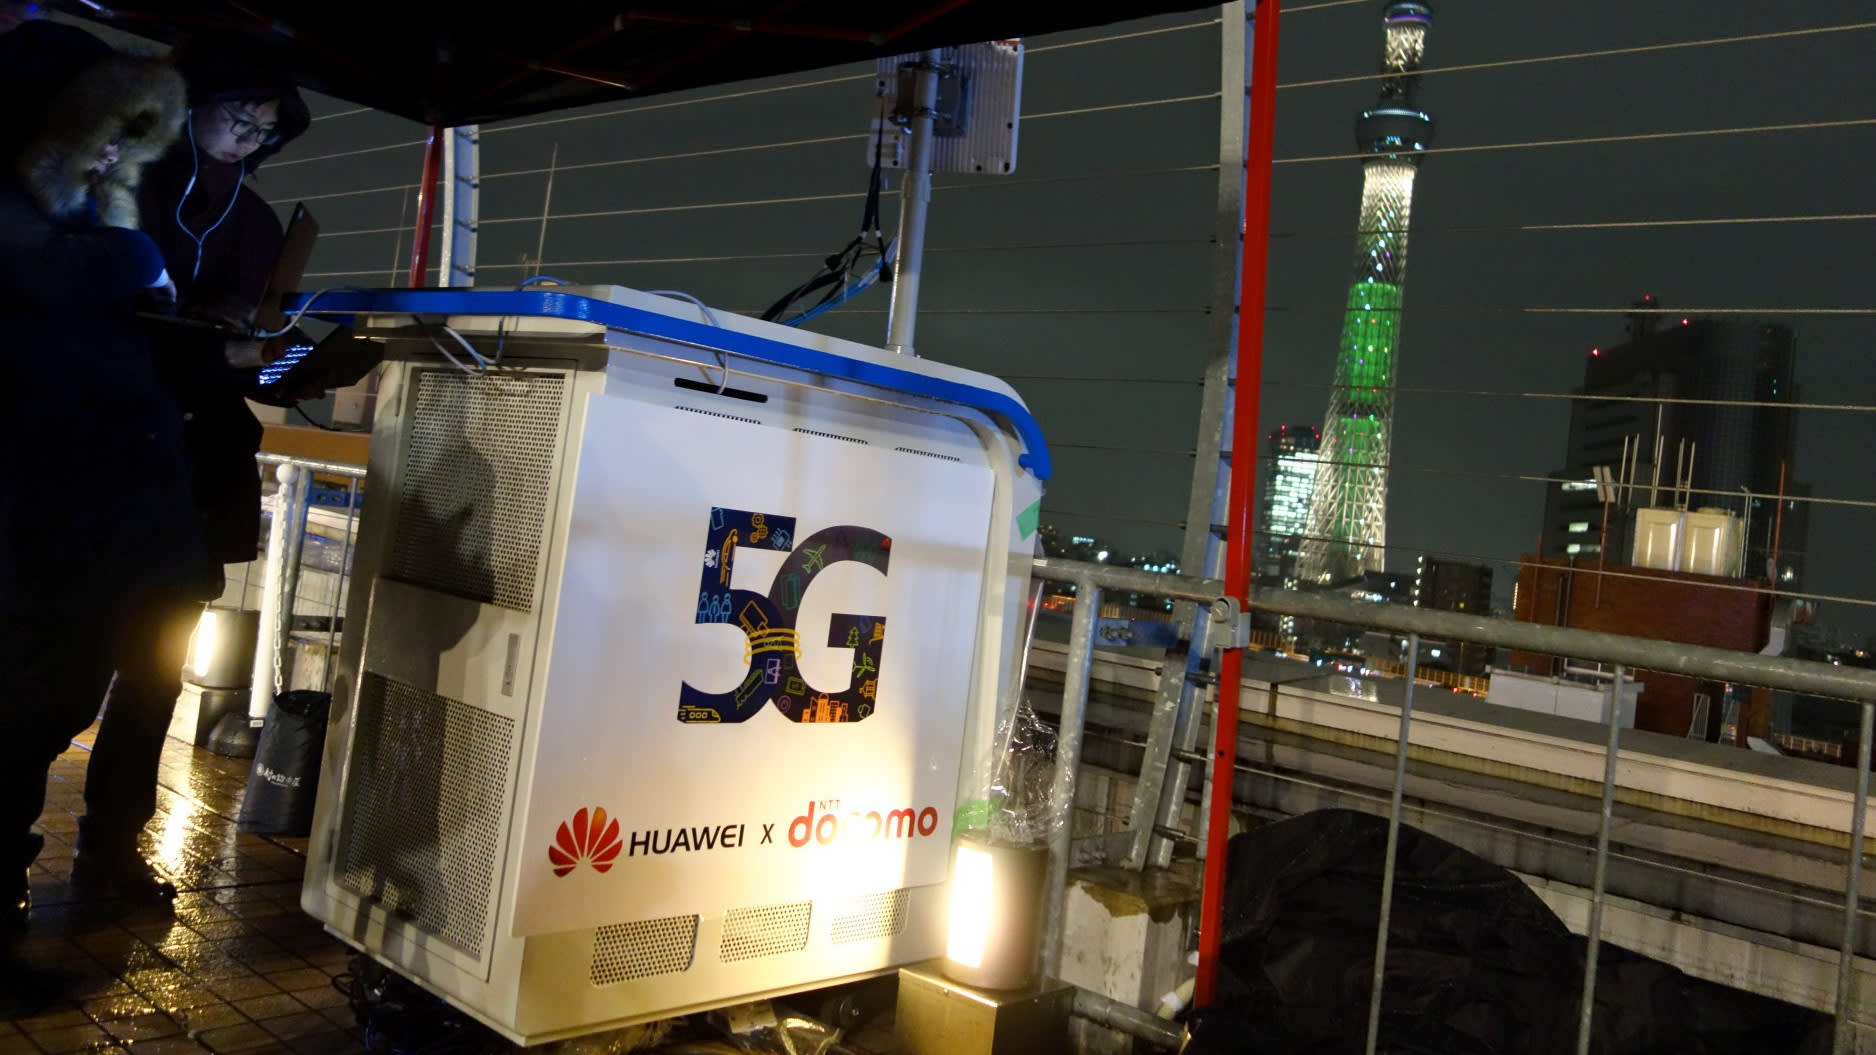 A pilot base station developed by Huawei on the roof of a building in Tokyo.